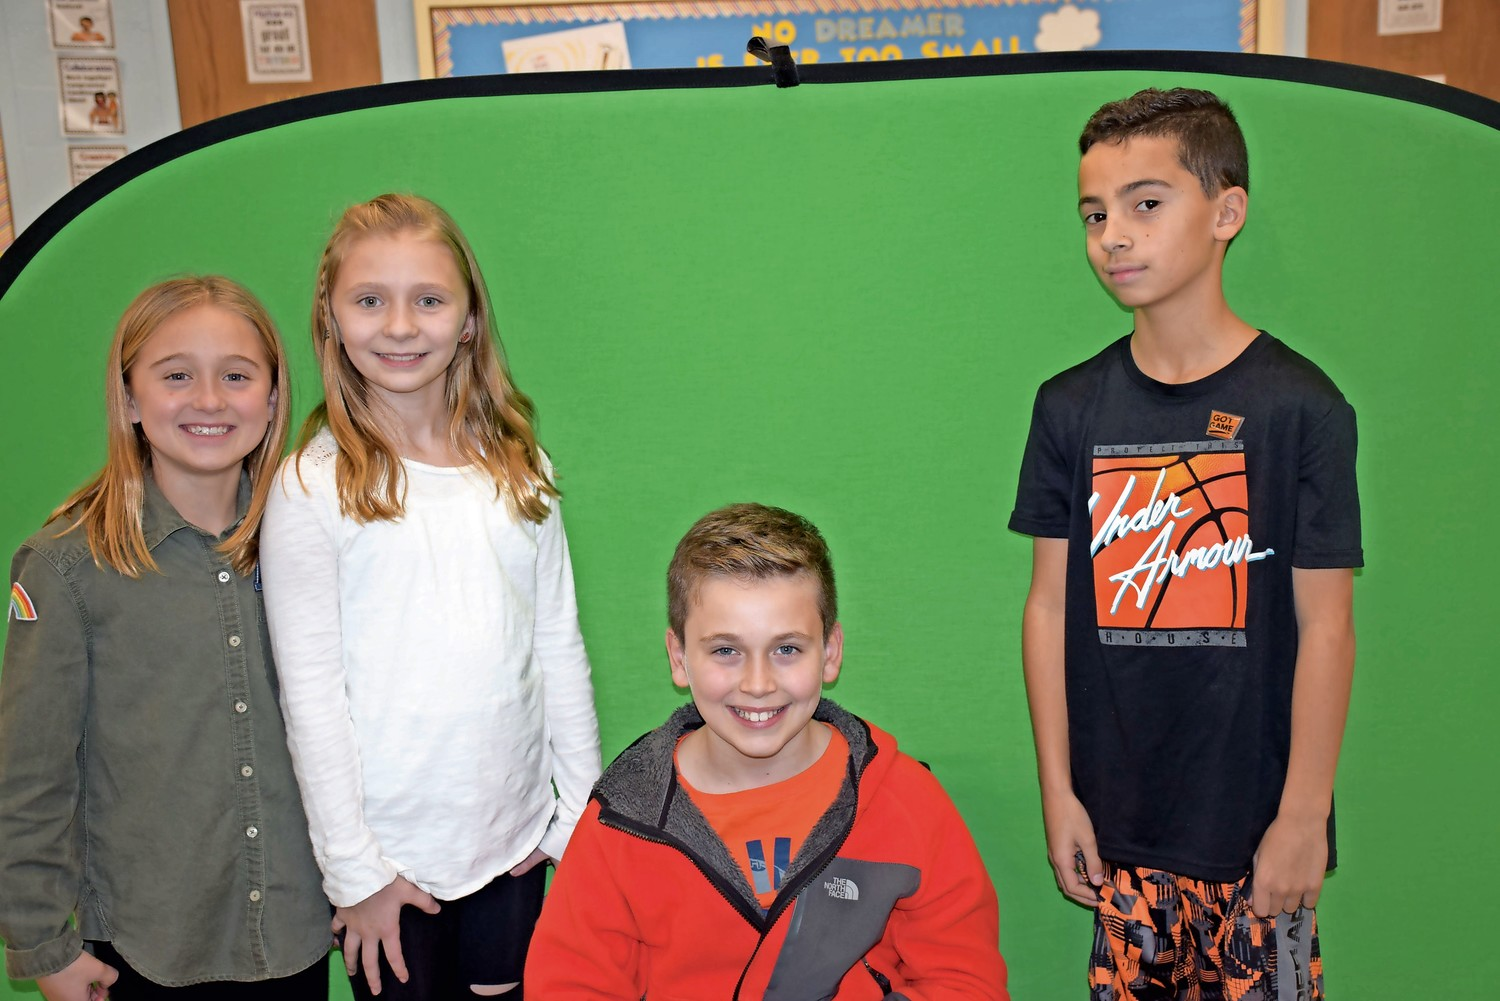 Forest Lake Elementary School fifth-graders, from left, Lyla Ingrilli, Madelyn Young, Francesco Pellicoro and John Nocero used a green screen to film their weather reports during a STEAM class.